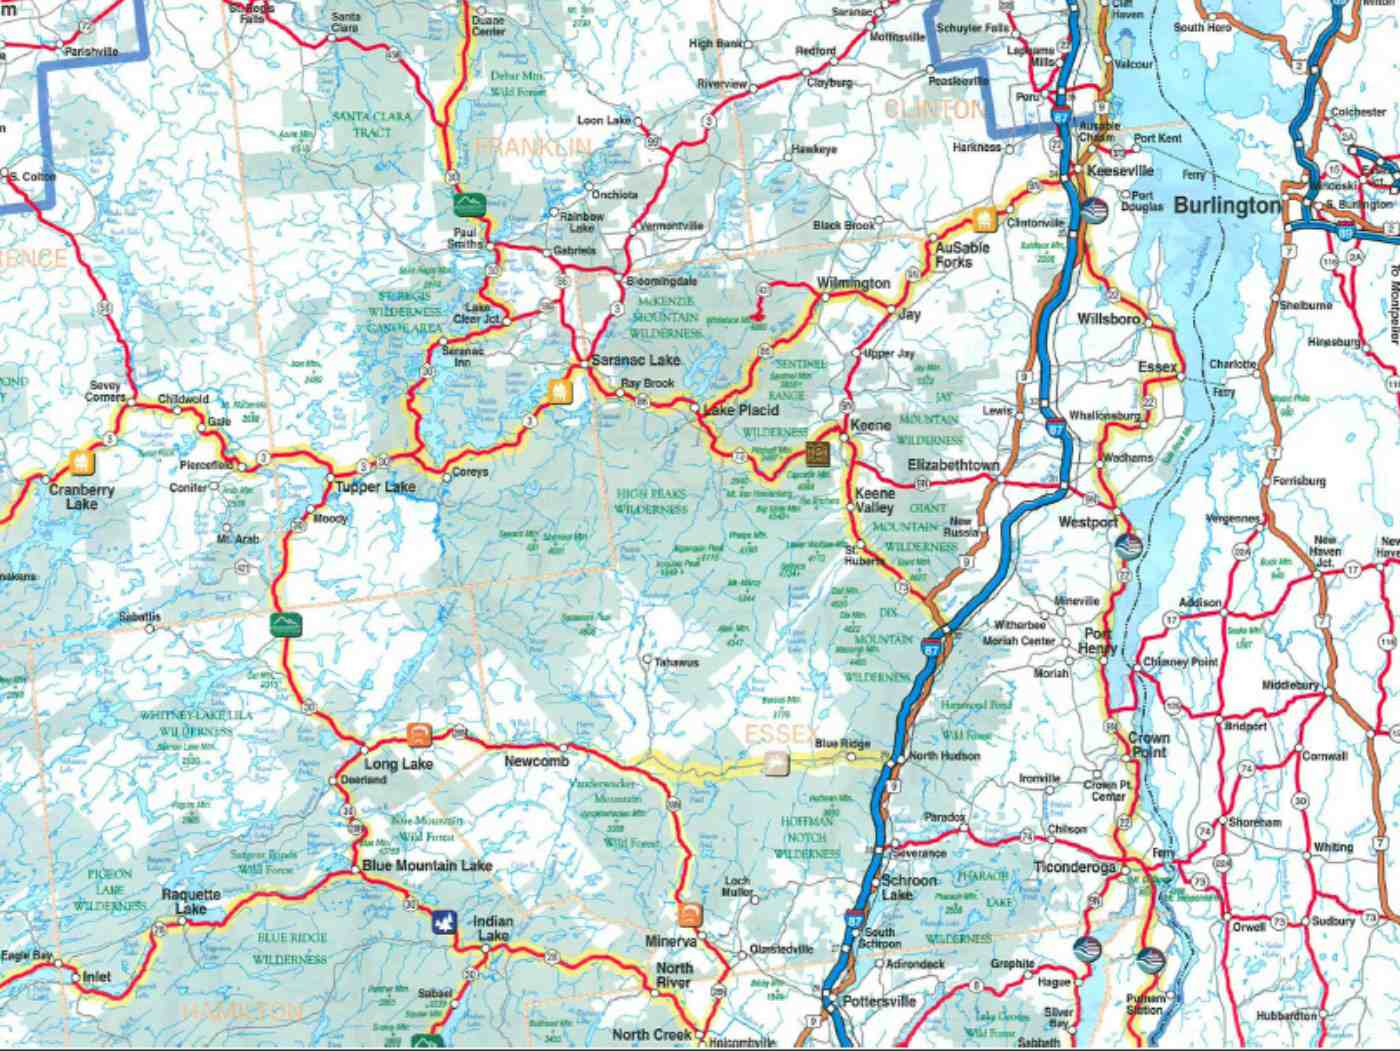 Map Of New York And Surrounding Areas.Maps Of New York Nyc Catskills Niagara Falls And More